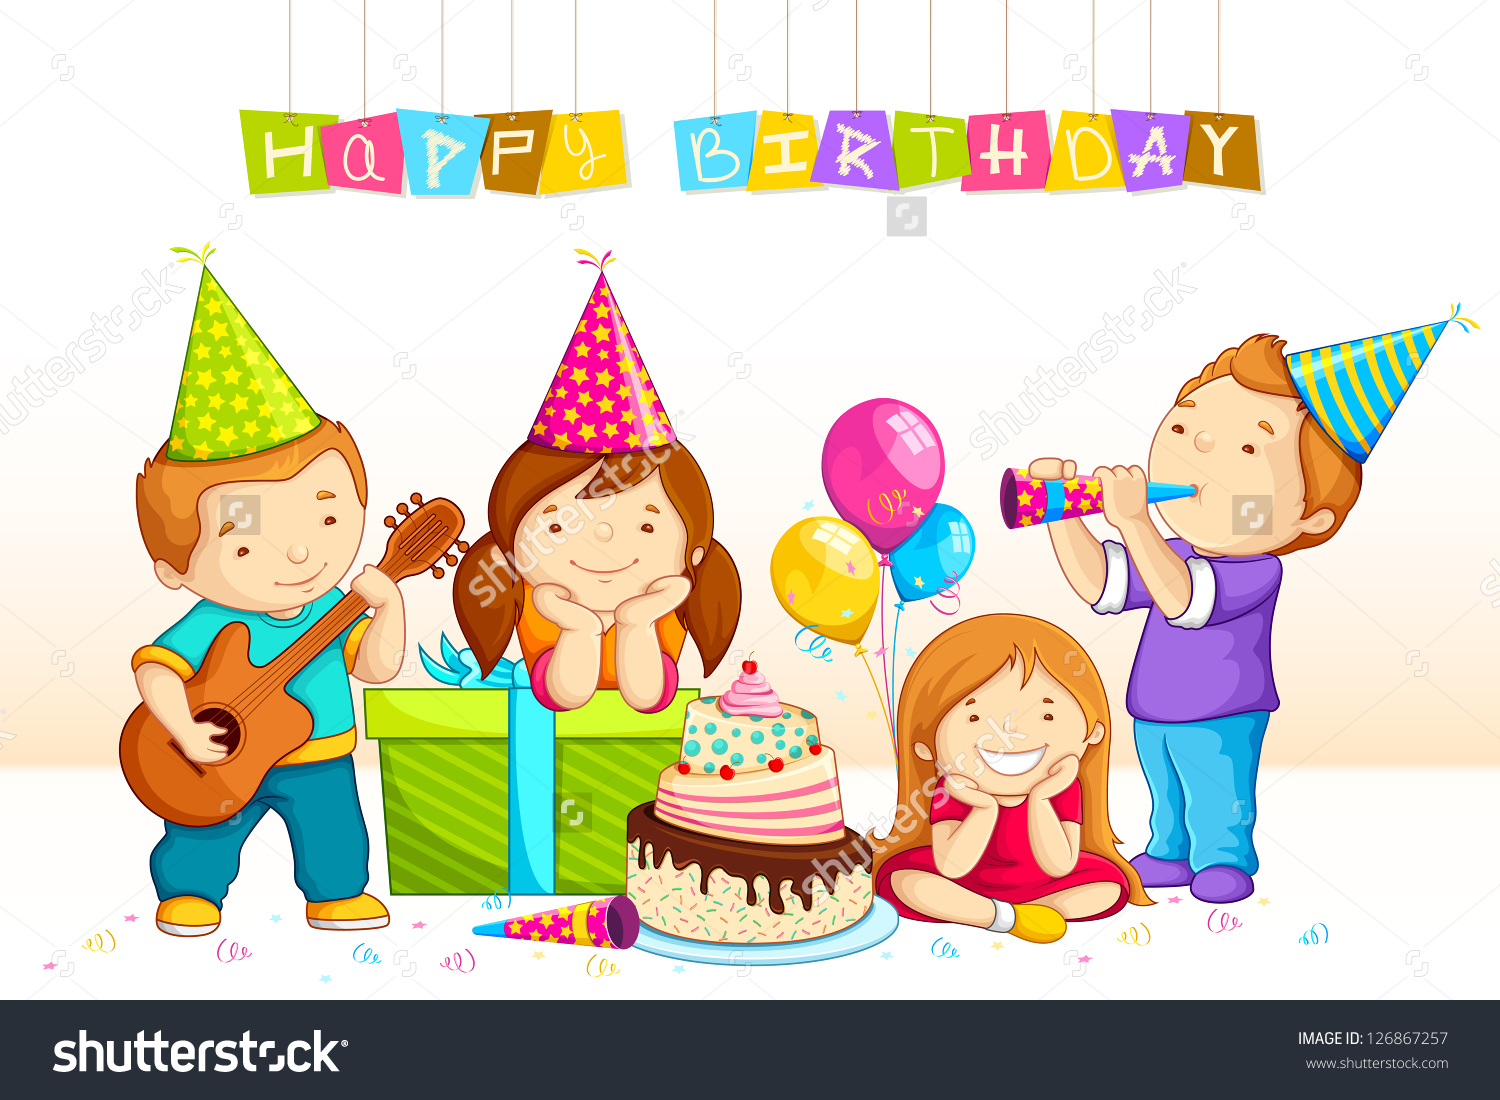 collection of celebrations. Celebrate clipart birthday cake